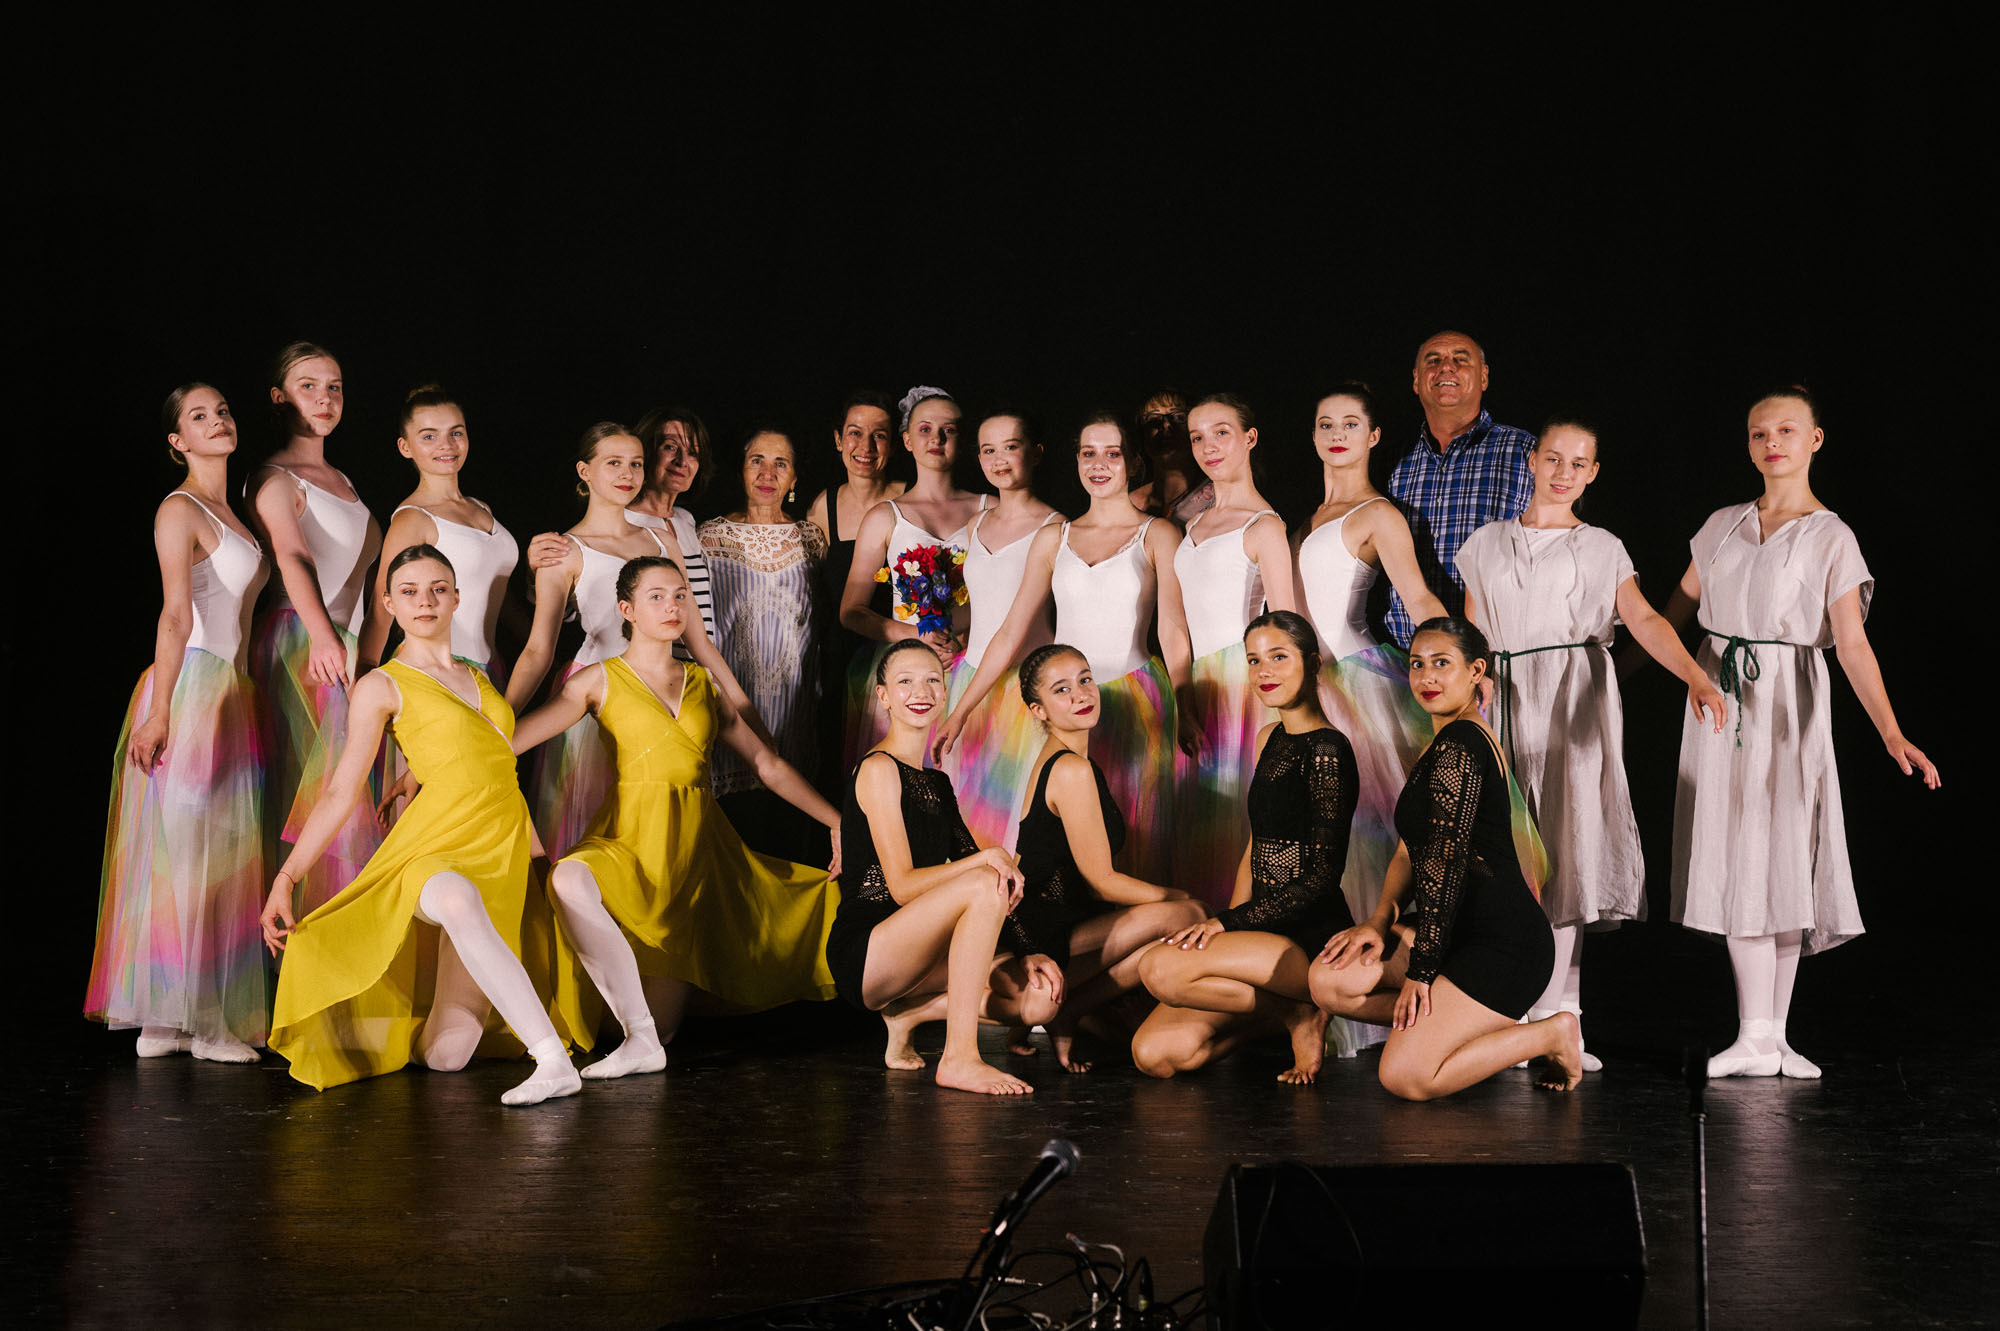 SOB performance in Richon LeZion, Israel with Varda Shoval's dance group, June 2019